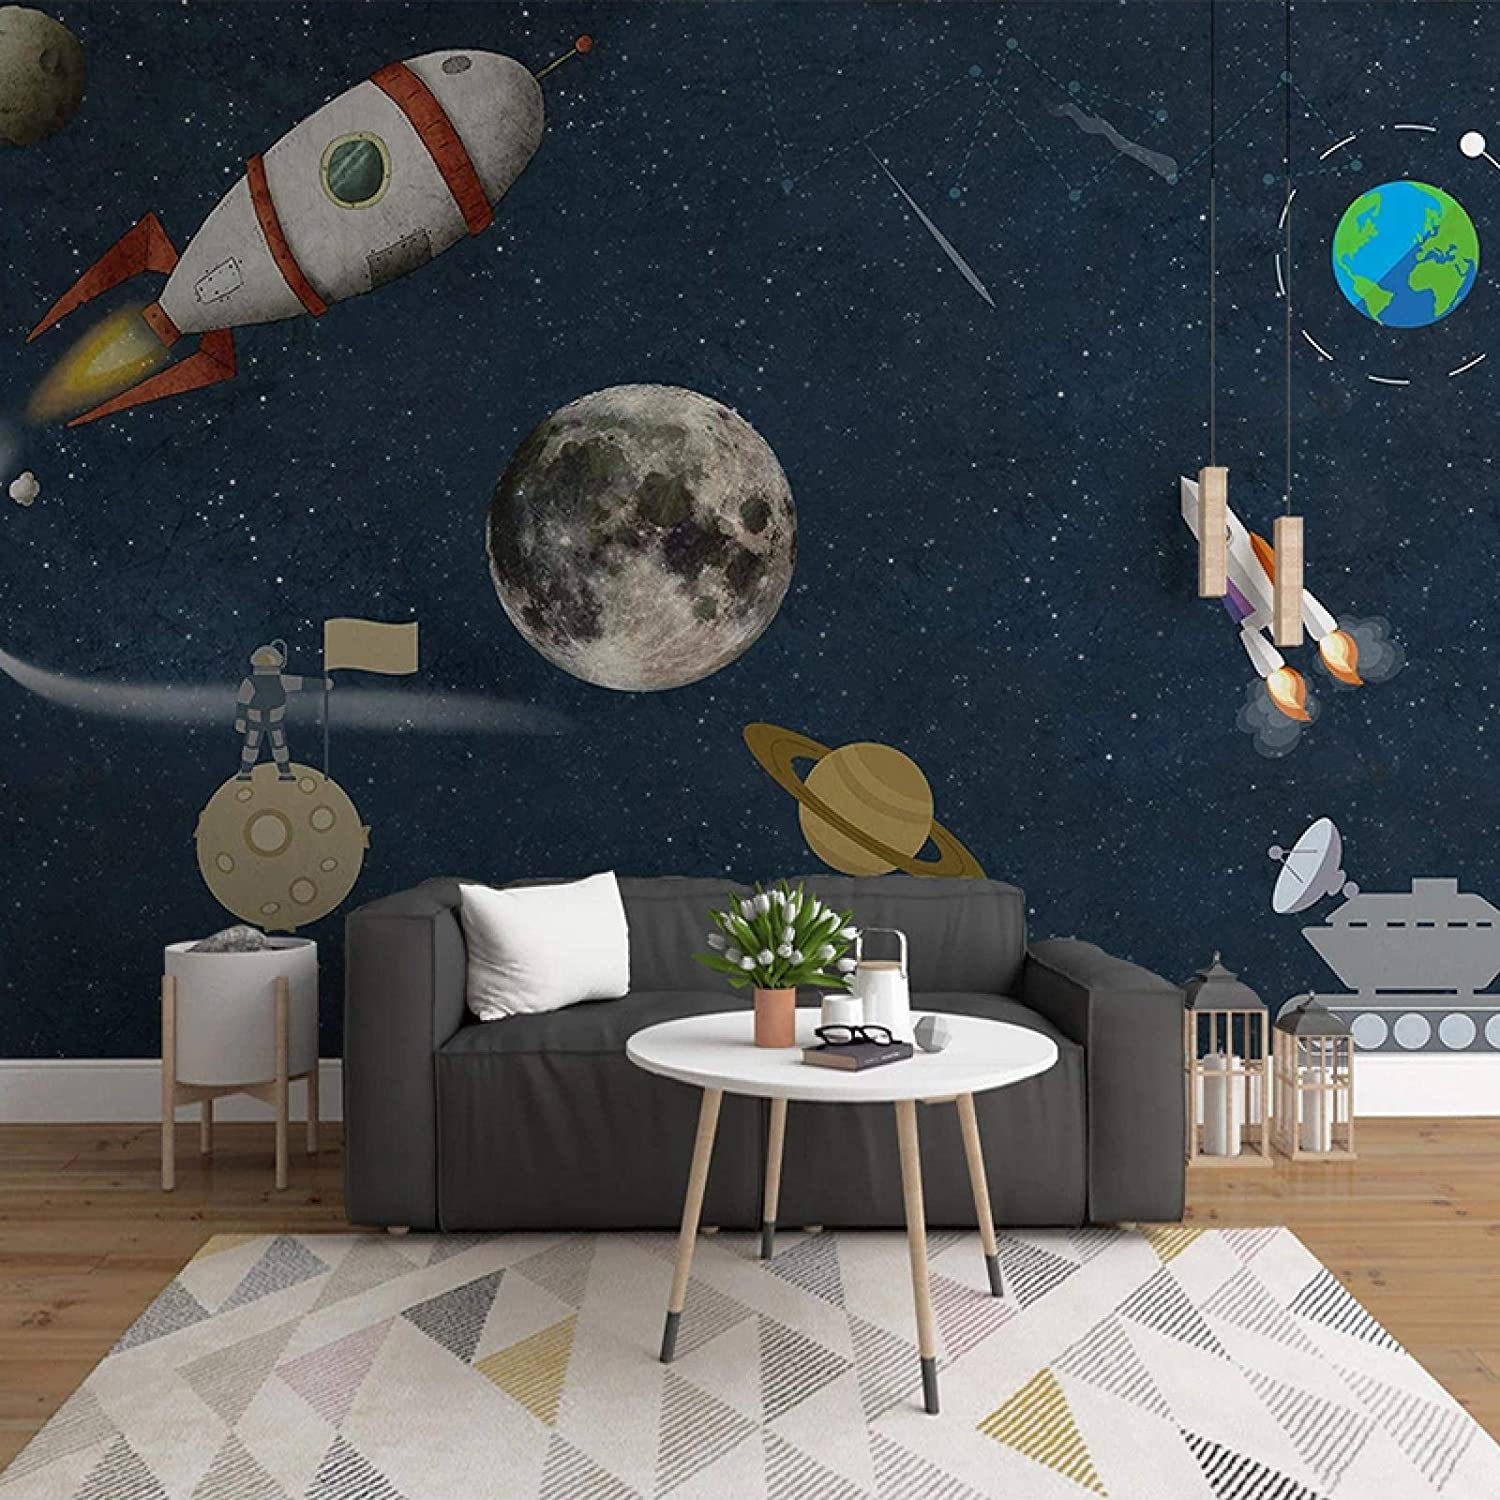 Spring new work one after another HGFHGD Photo Wallpaper 3D Hand-Painted Pl favorite Space Universe Cartoon